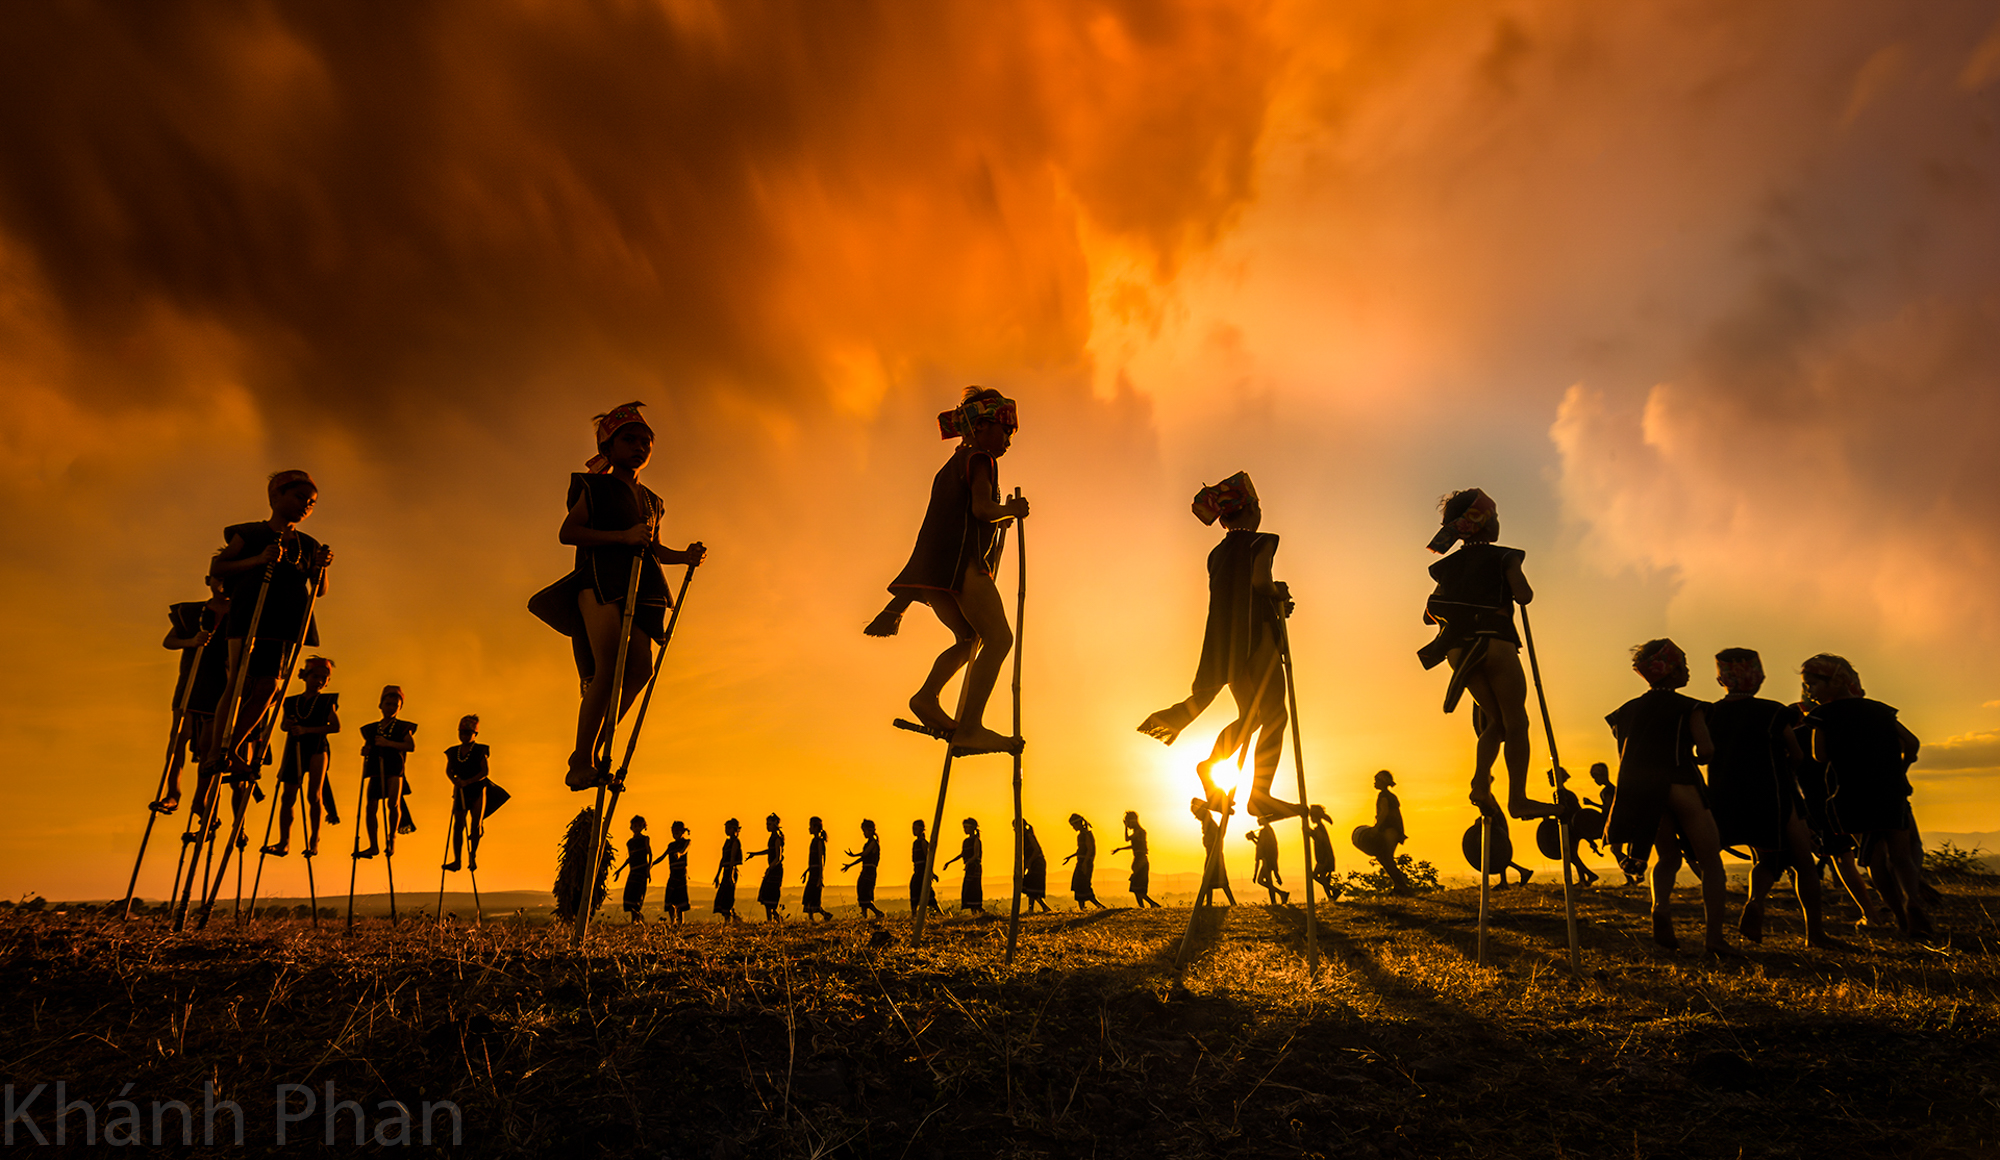 'Children dancing with gongs,' a photo capturing children dancing with gongs at a festival in Gia Lai, which was listed among the 2020 world's best photos of golden hour by Agora. Photo: Khanh Phan